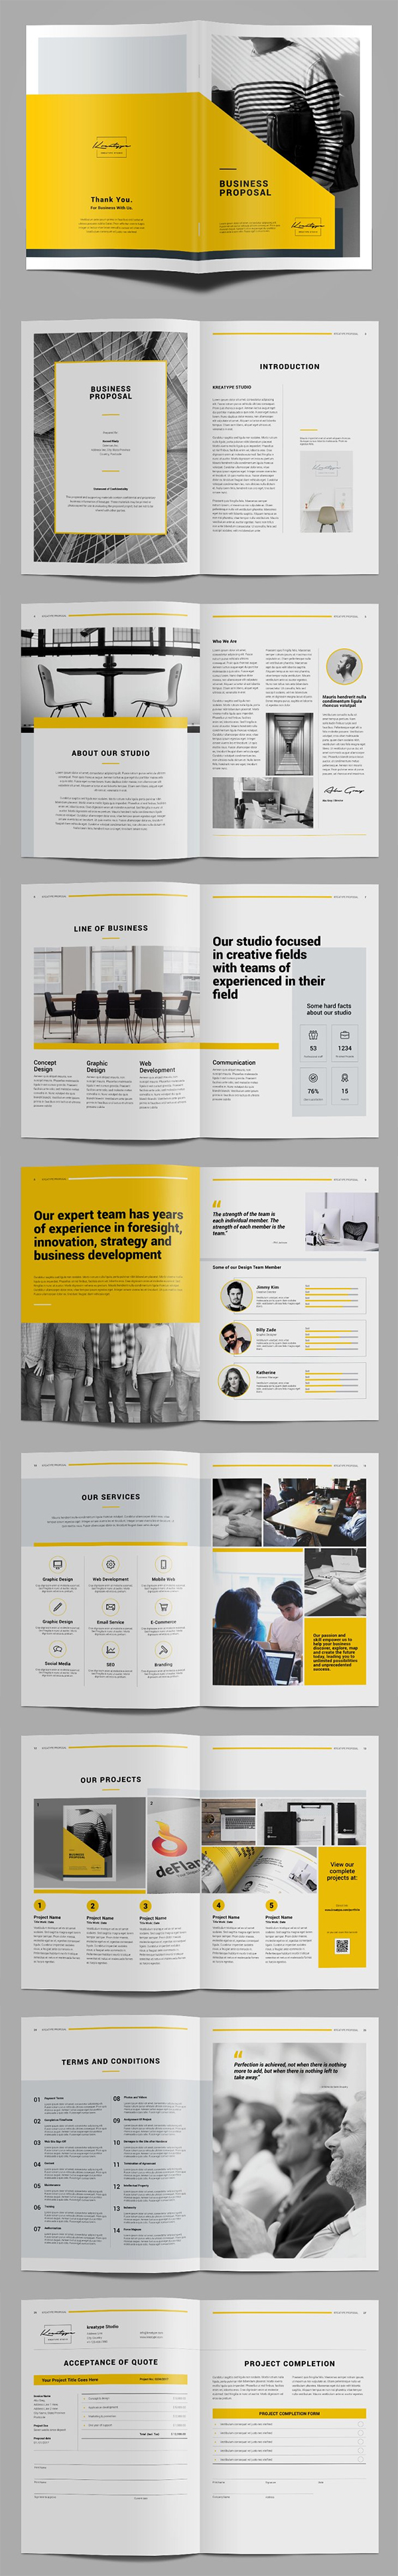 Kreatype Proposal Brochure Template